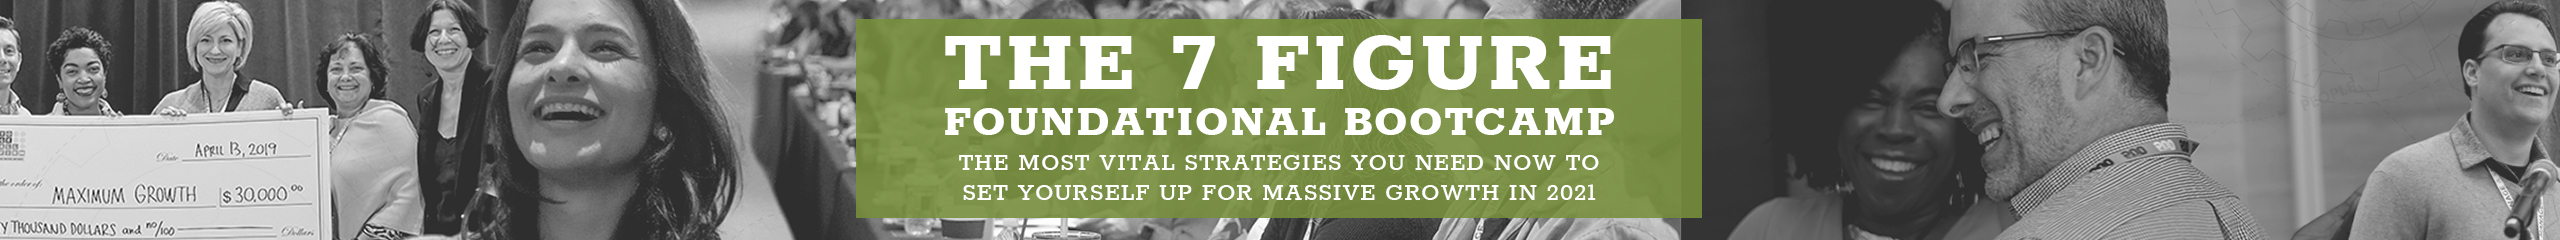 the 7 figure foundational bootcamp. the most vital strategies you need now to set yourself up for massive growth in 2021